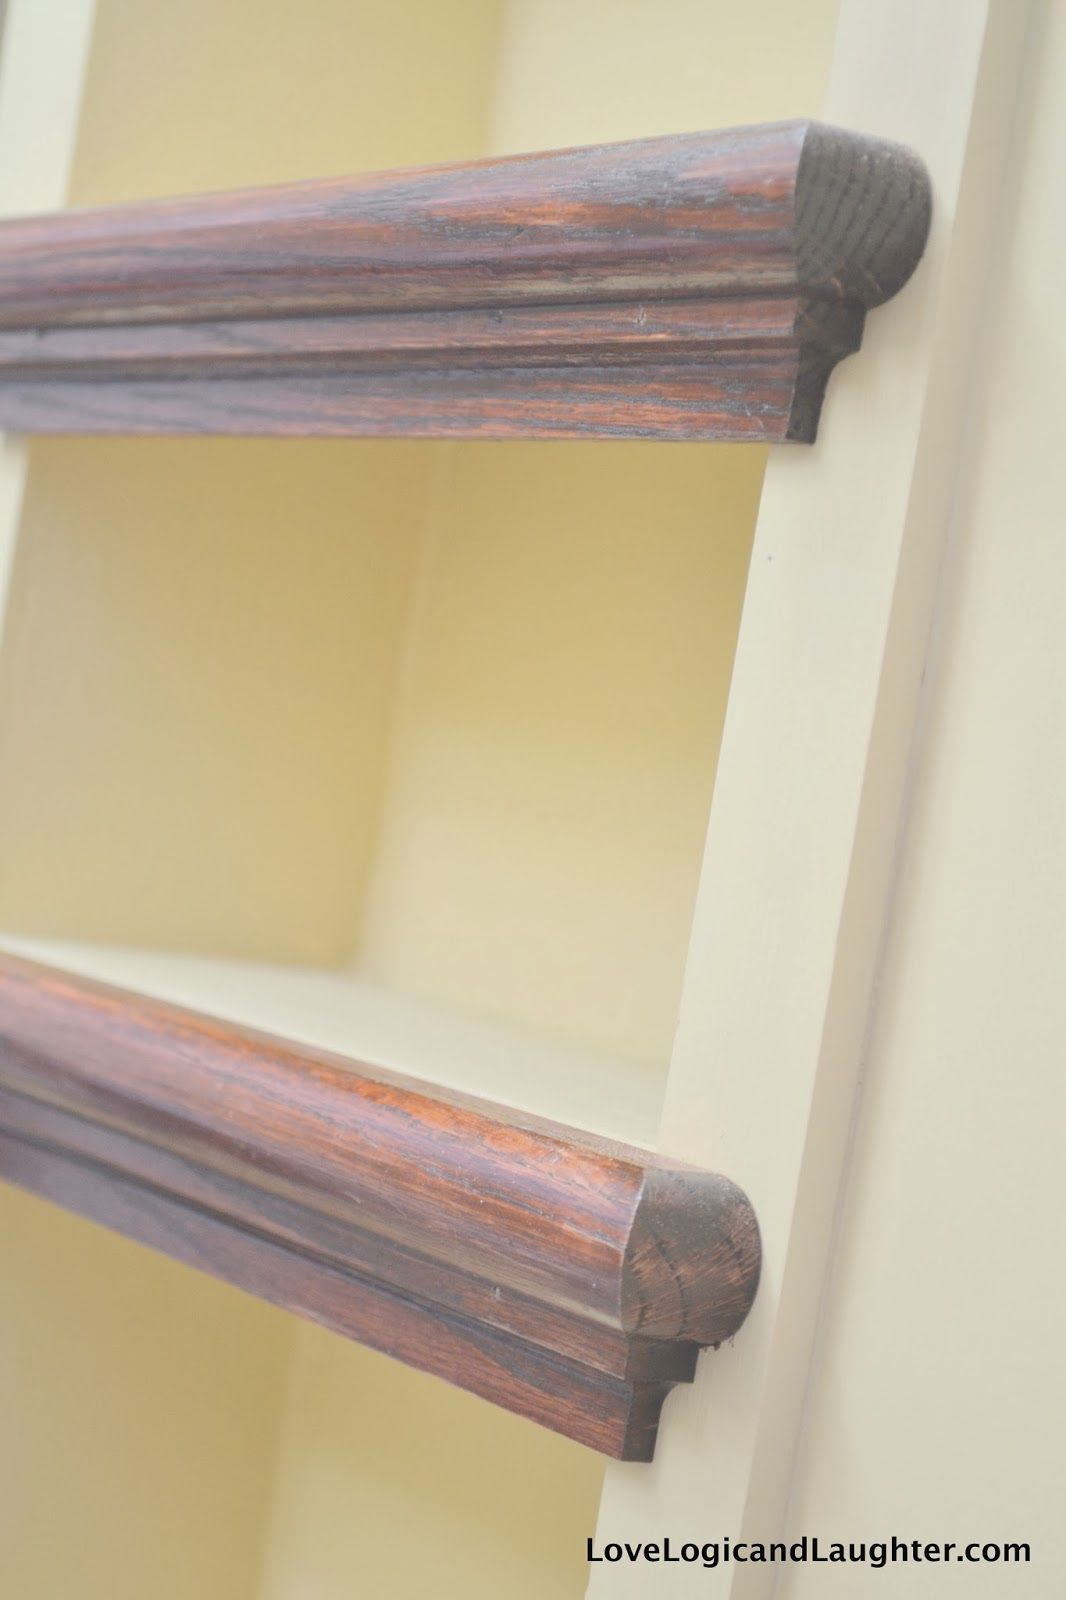 Using Stair Tread Nosing as Finishing Trim on Built-in Shelves ...